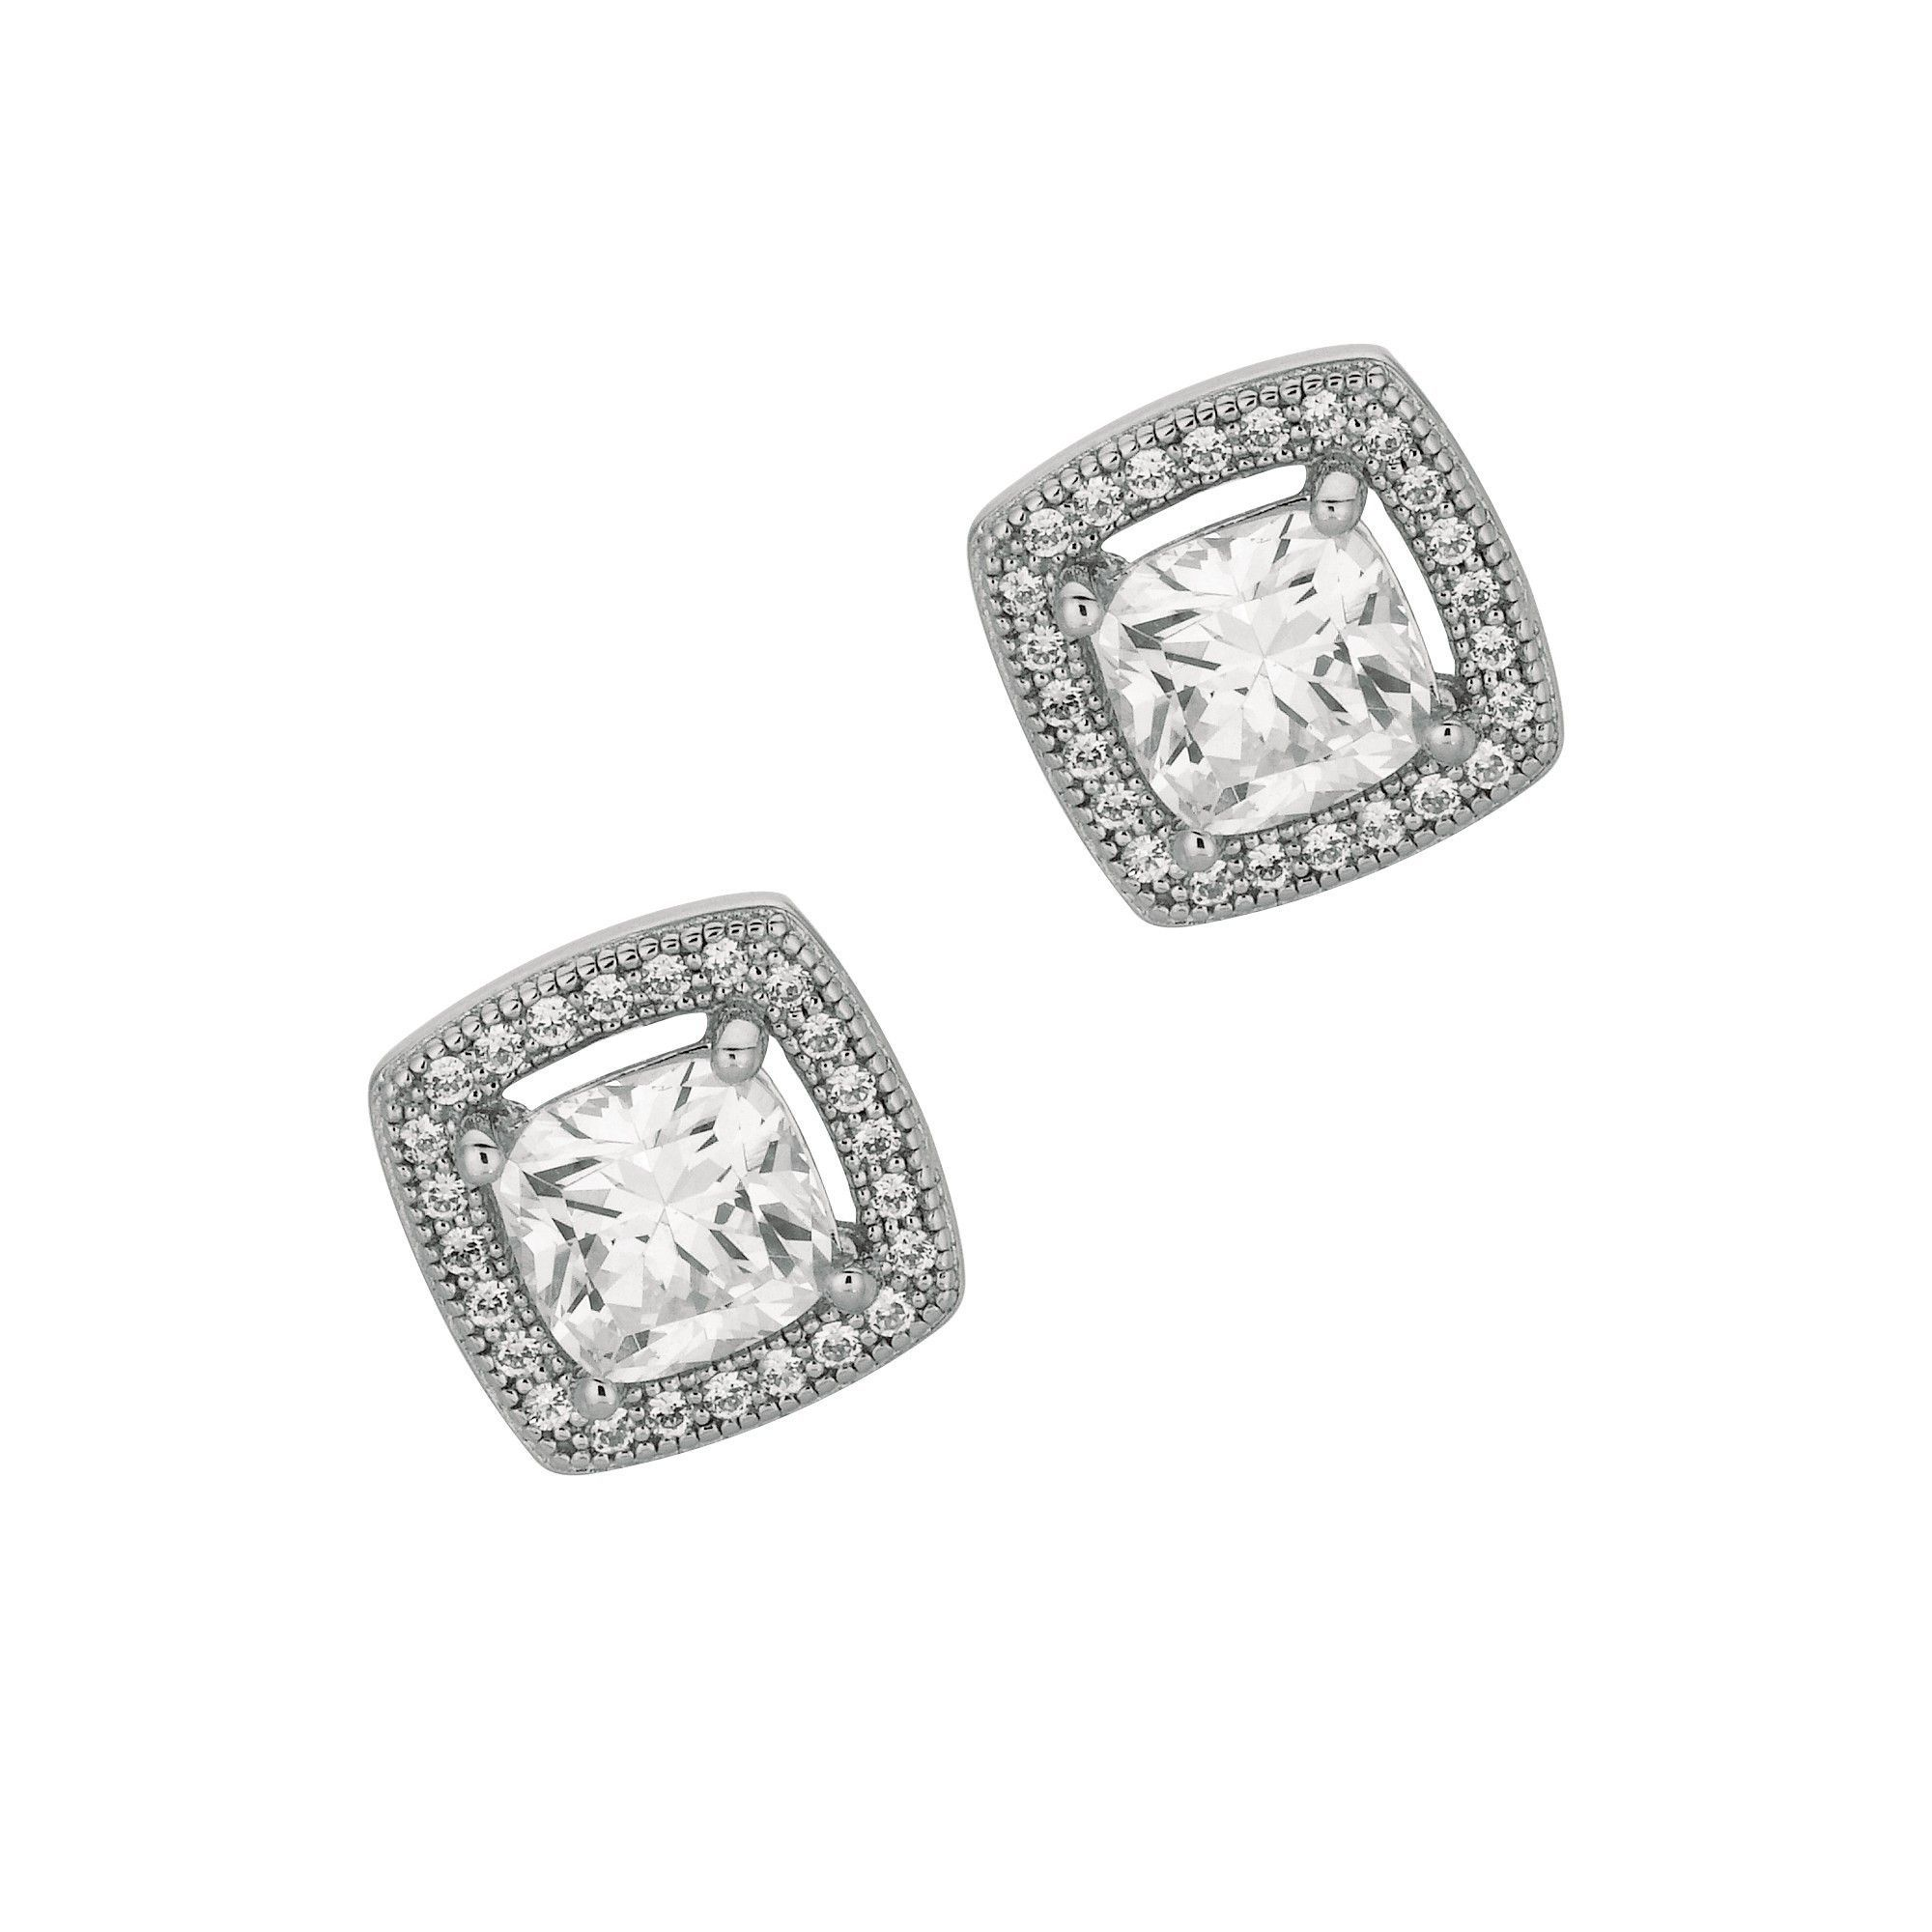 Rhodium Finish Shiny Fancy Open Square with Cubic Zirconia Earring